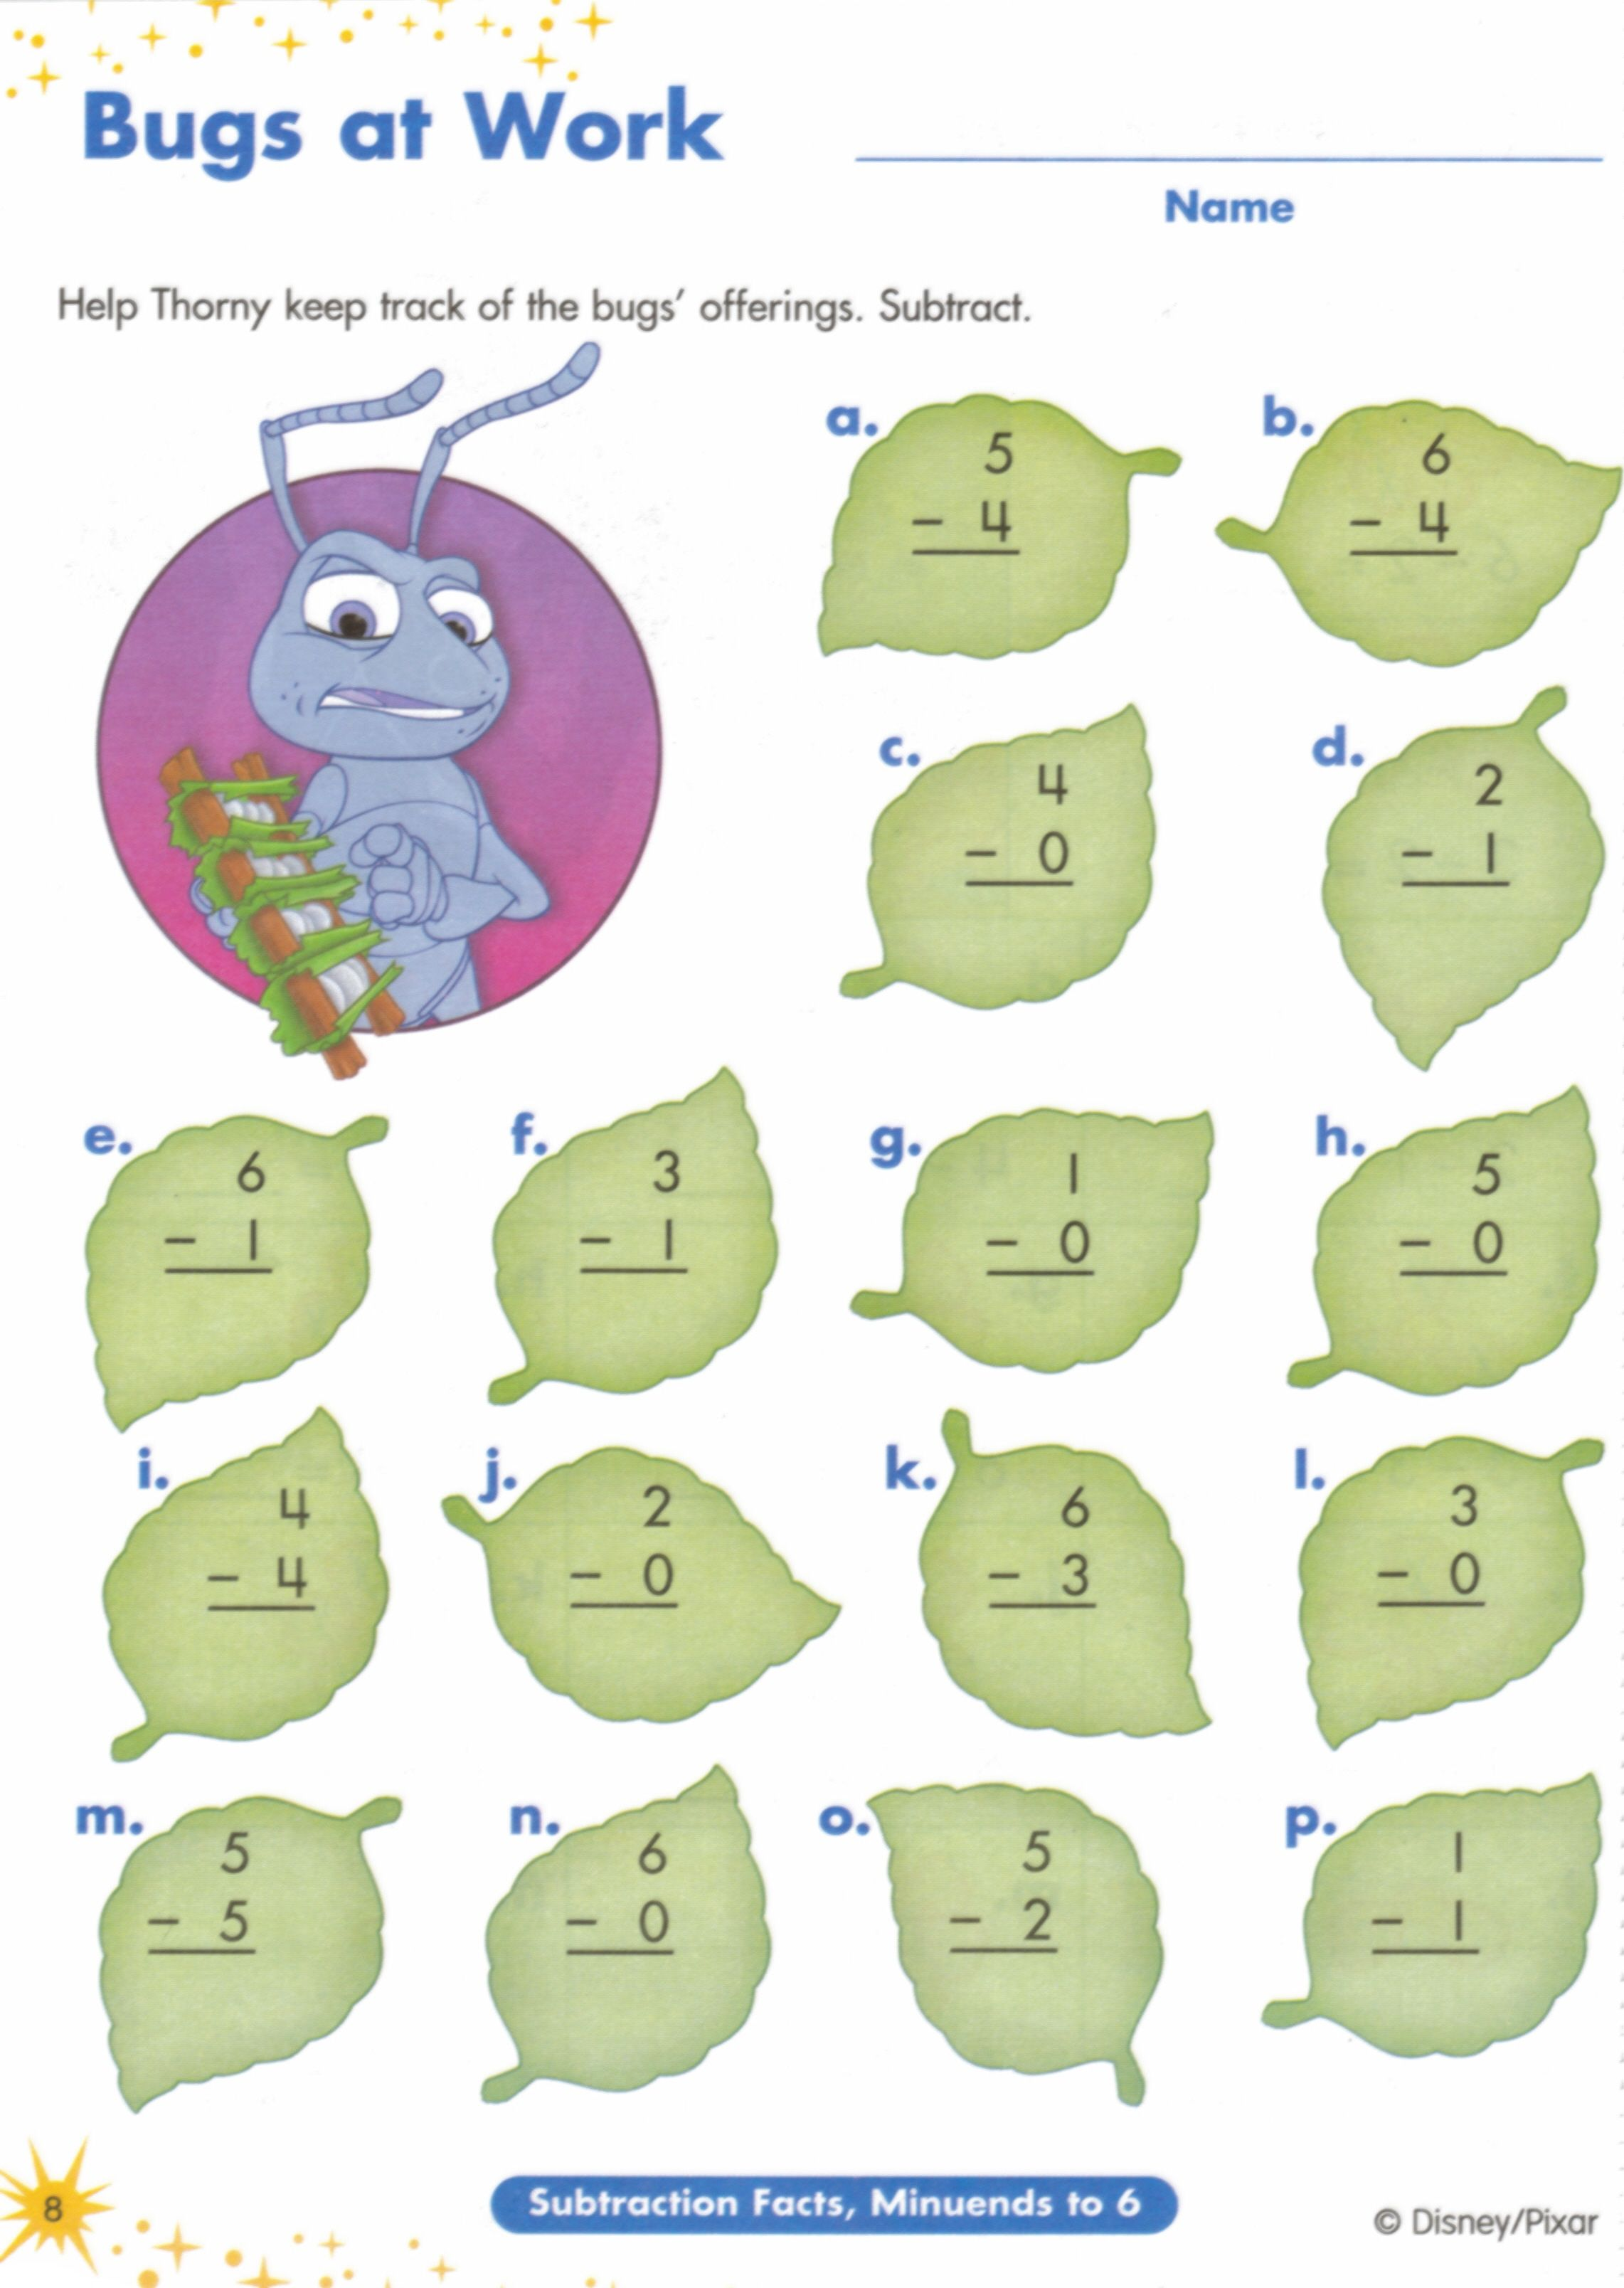 Proatmealus  Mesmerizing  Images About Worksheets On Pinterest  Fun Facts For Kids  With Fascinating  Images About Worksheets On Pinterest  Fun Facts For Kids Earth Day Worksheets And Jungles With Astounding Looking Inside Cells Worksheet Also Microsoft Excel Worksheet In Addition Kindergarten Back To School Worksheets And Grade  Printable Worksheets As Well As Science Forces Worksheet Additionally Download Kumon Worksheets Pdf From Pinterestcom With Proatmealus  Fascinating  Images About Worksheets On Pinterest  Fun Facts For Kids  With Astounding  Images About Worksheets On Pinterest  Fun Facts For Kids Earth Day Worksheets And Jungles And Mesmerizing Looking Inside Cells Worksheet Also Microsoft Excel Worksheet In Addition Kindergarten Back To School Worksheets From Pinterestcom